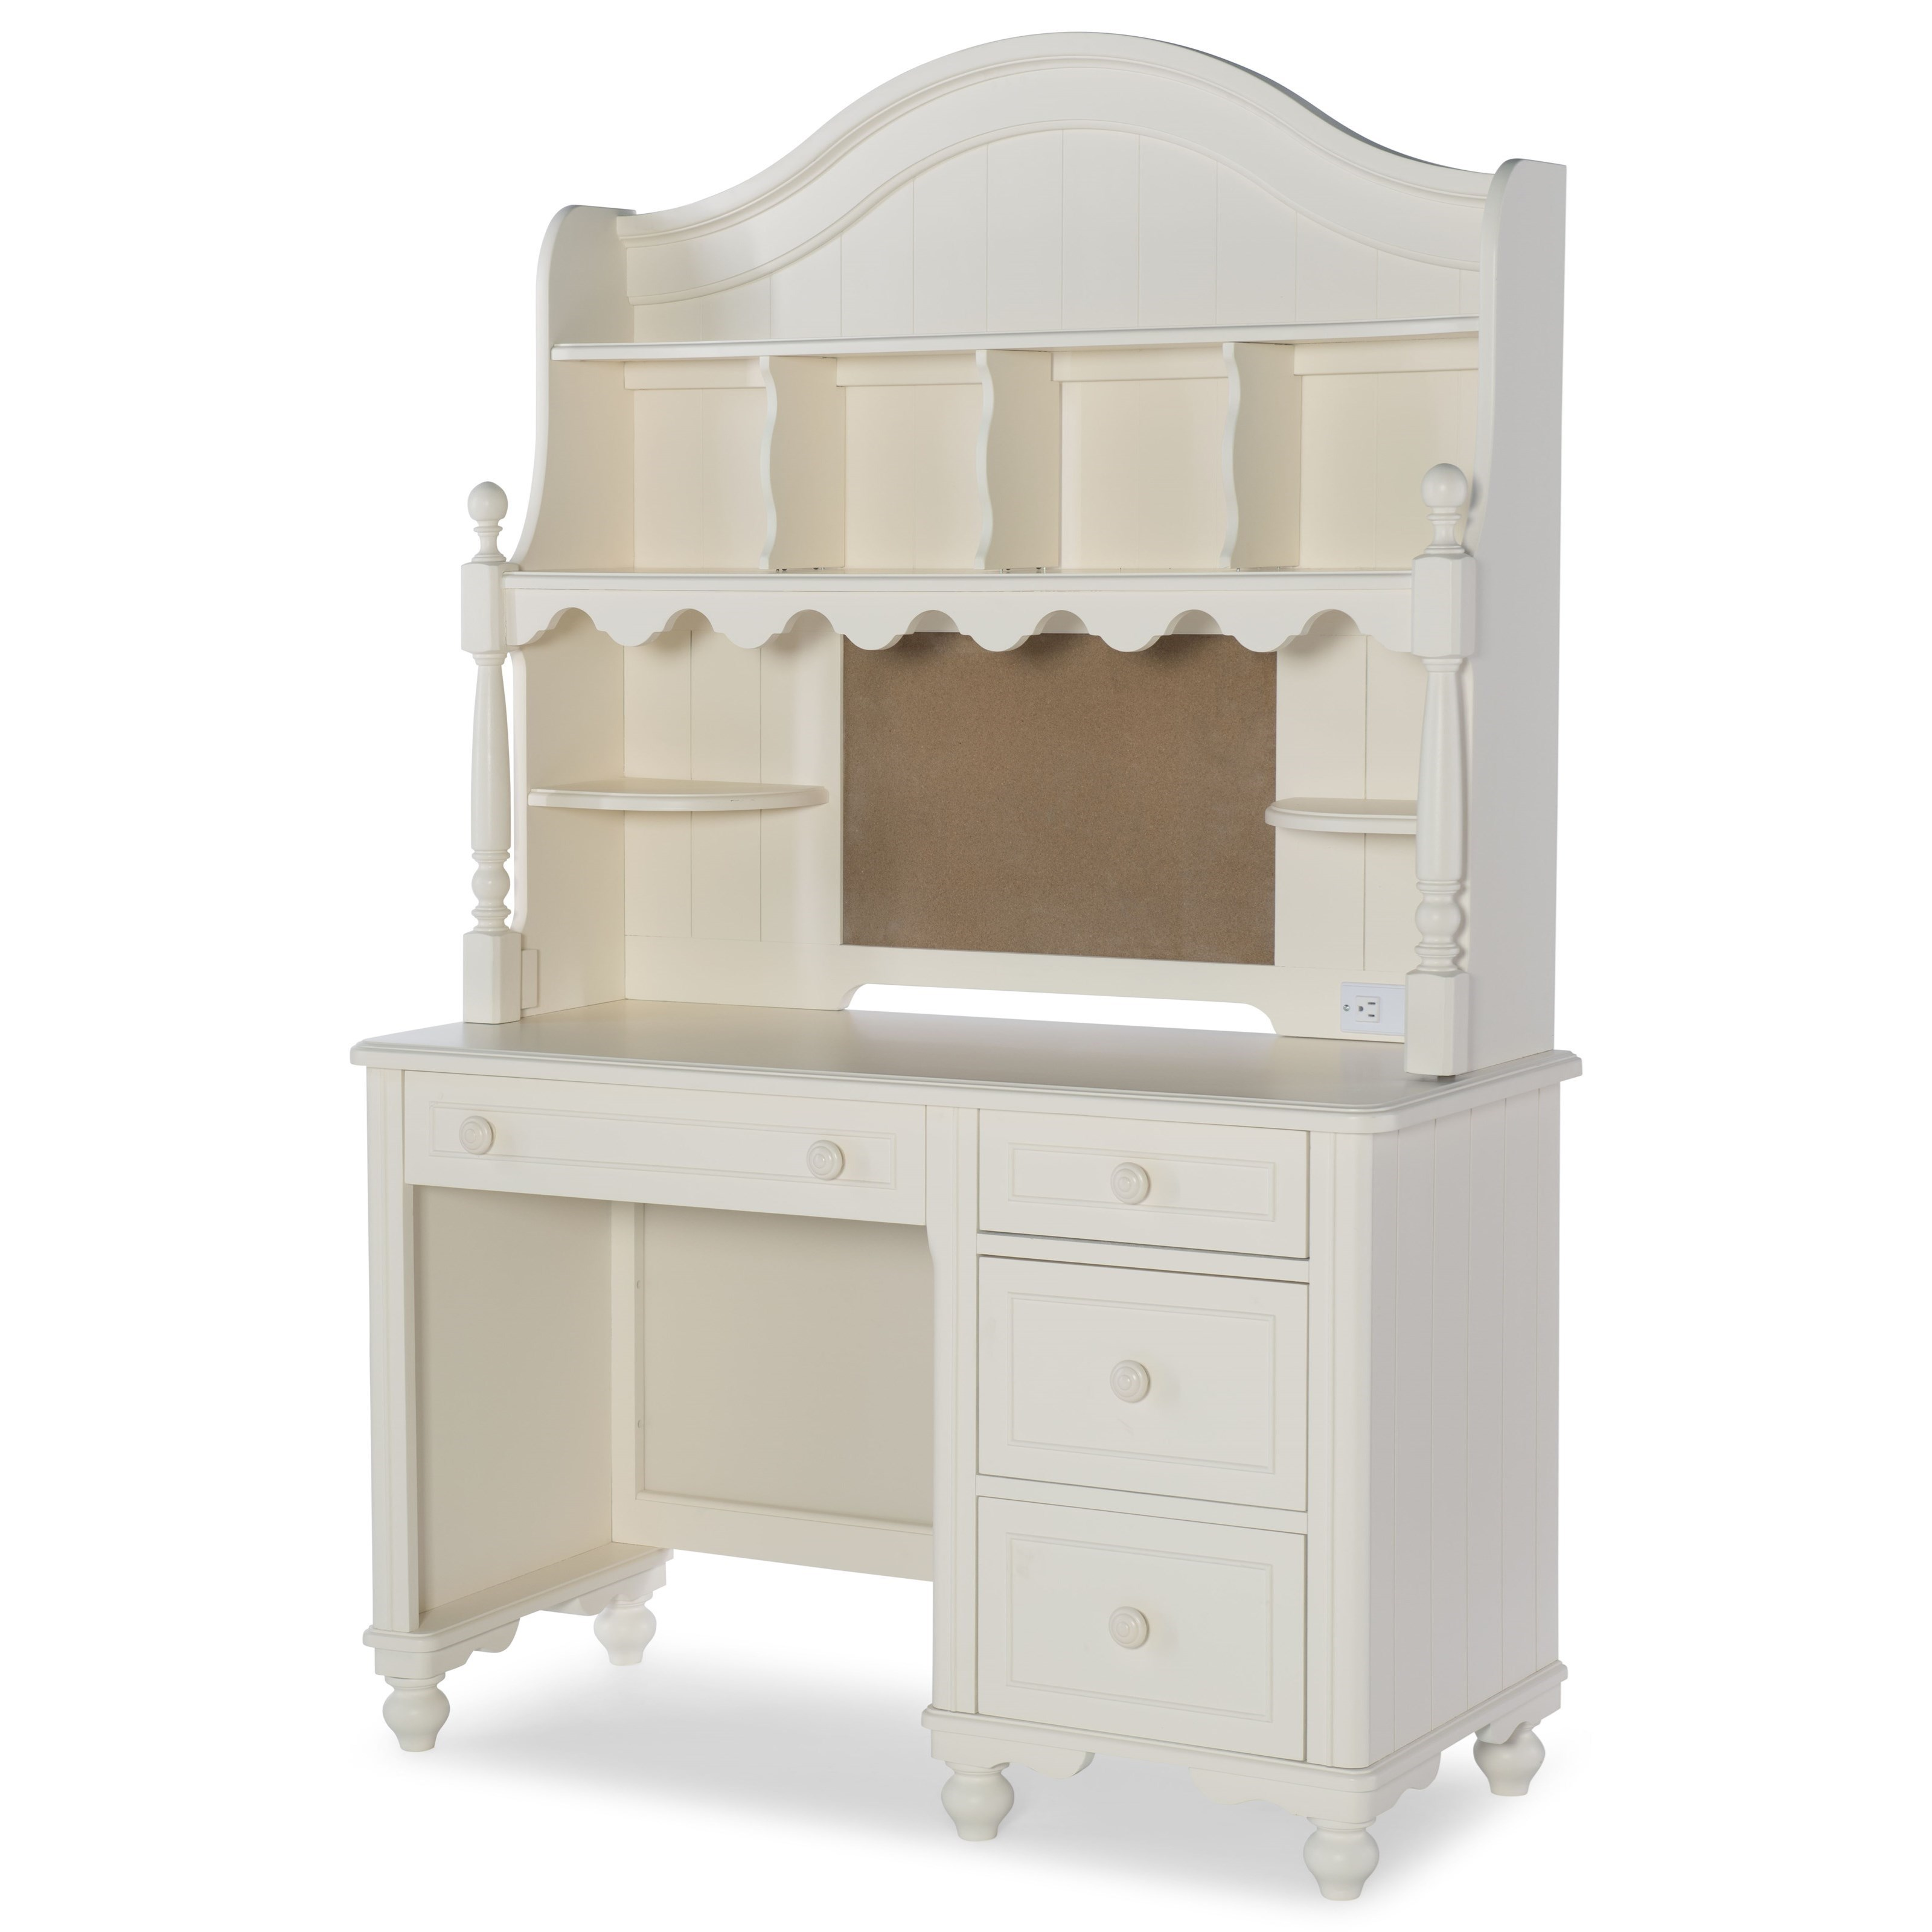 Summerset Desk with Hutch by Legacy Classic Kids at Mueller Furniture